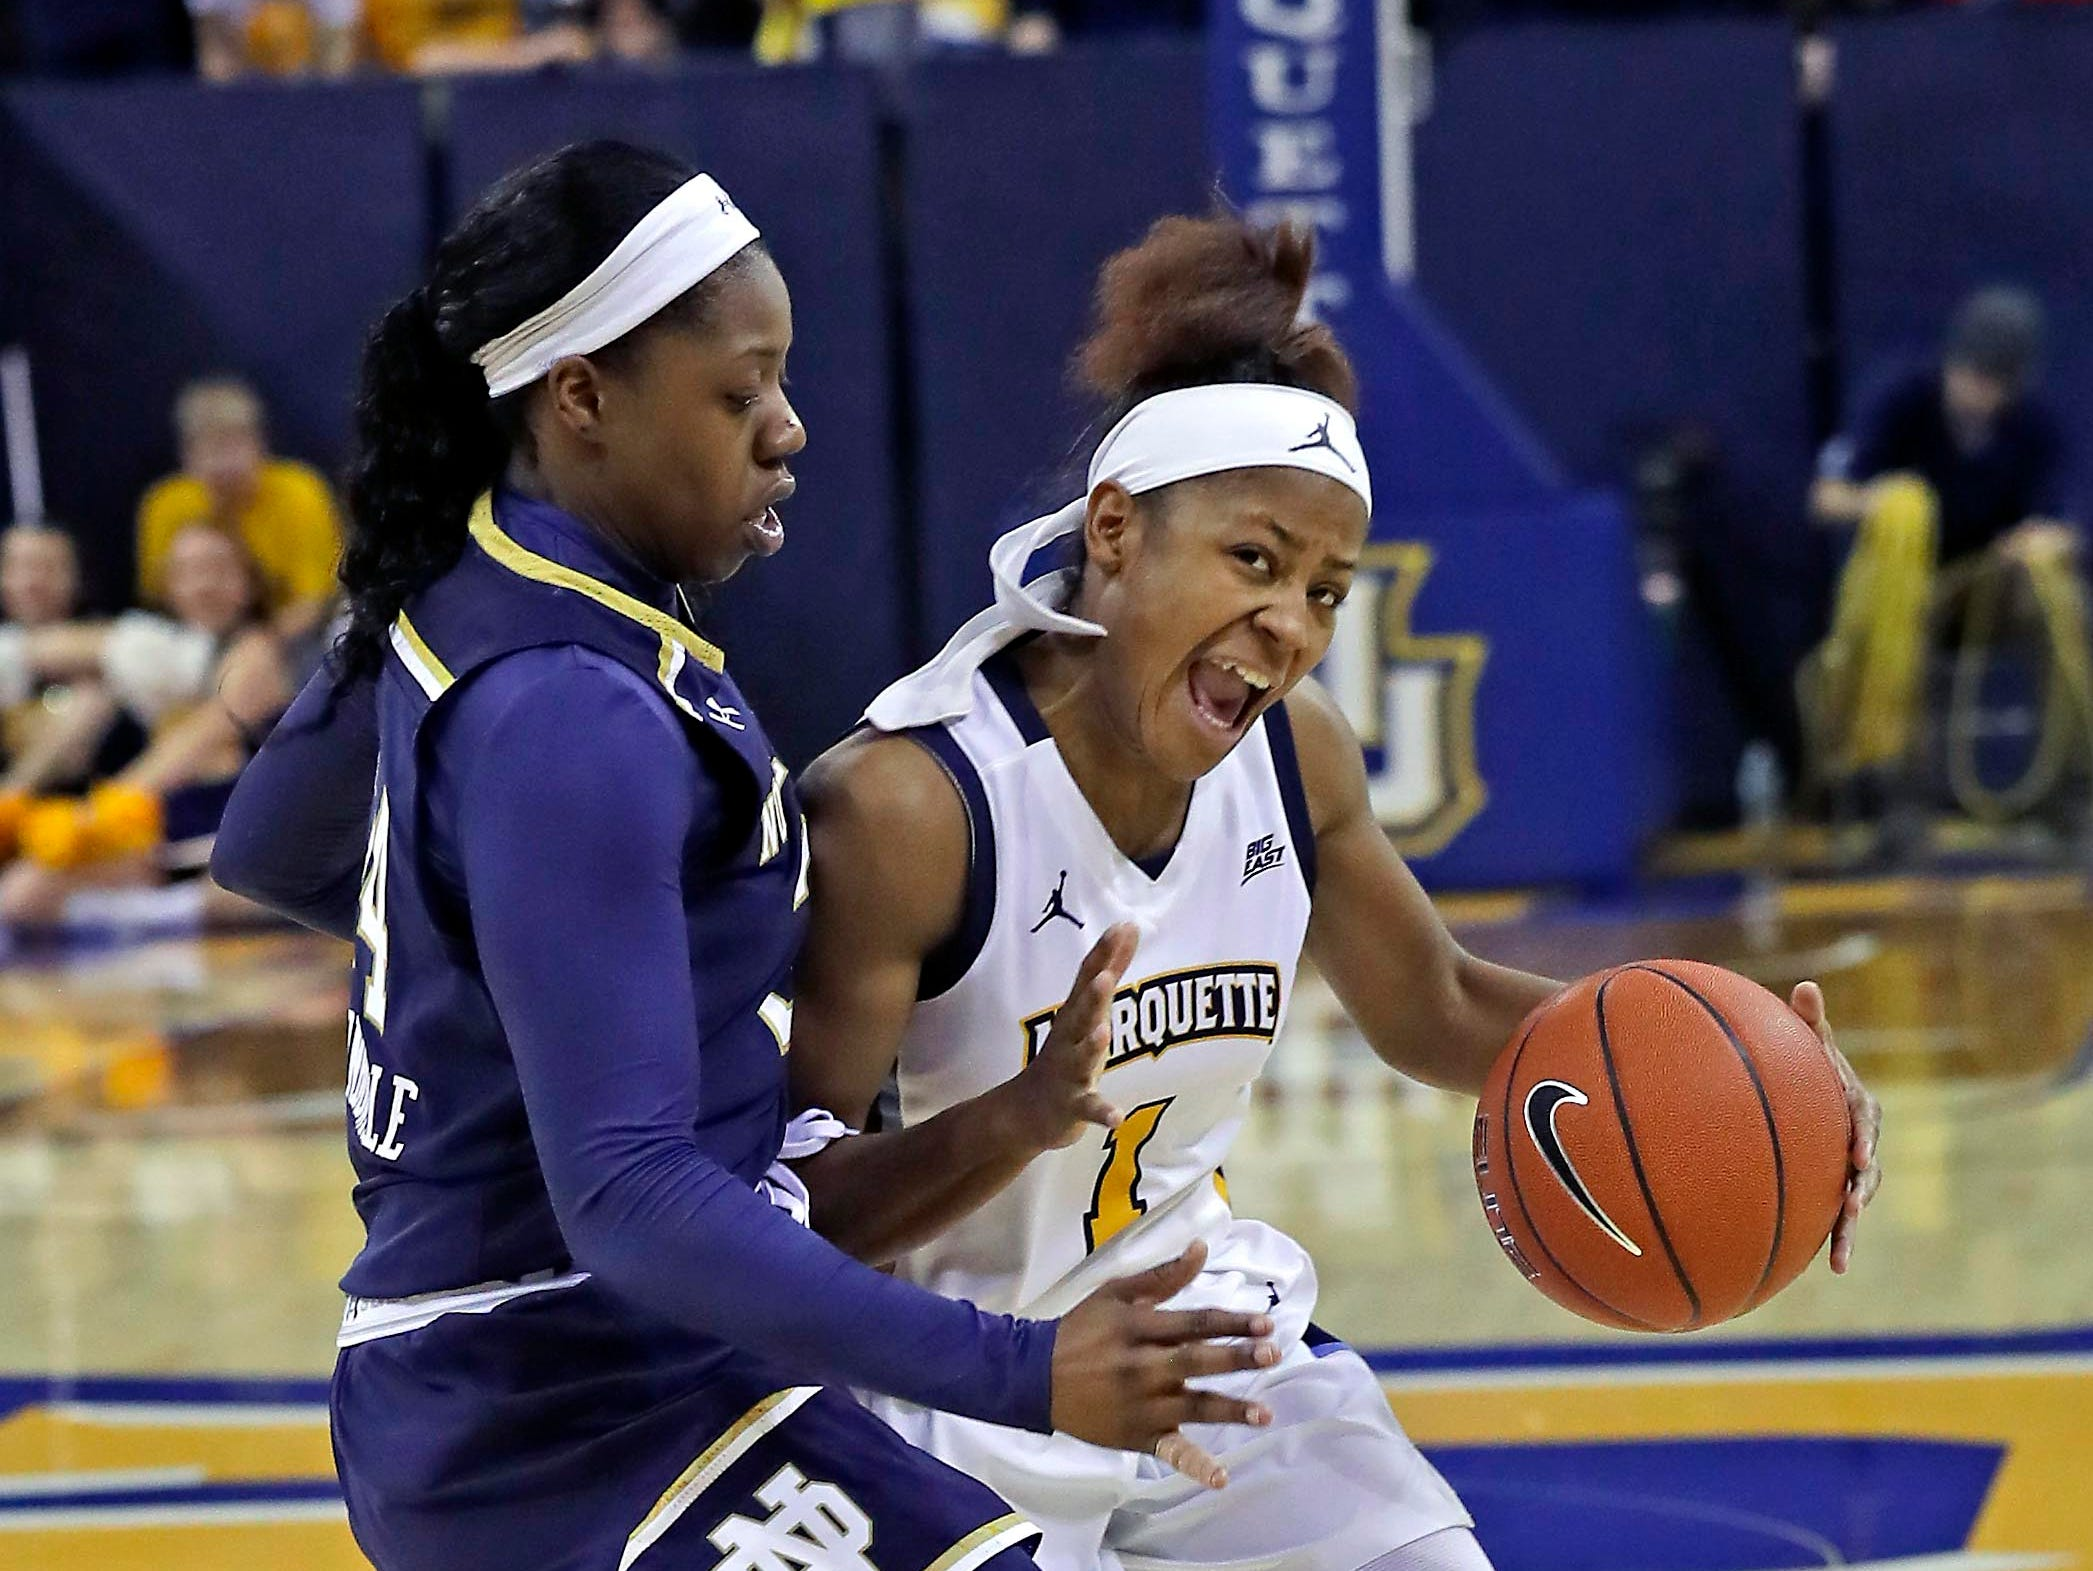 Marquette Golden Eagles guard Danielle King (1) is pressed hard by Notre Dame Fighting Irish guard Arike Ogunbowale during a women's basketball  game  between Marquette and Notre Dame. Defending national champion Notre Dame, which won the game, 87-63, is led by Ogunbowale, a former DSHA star.